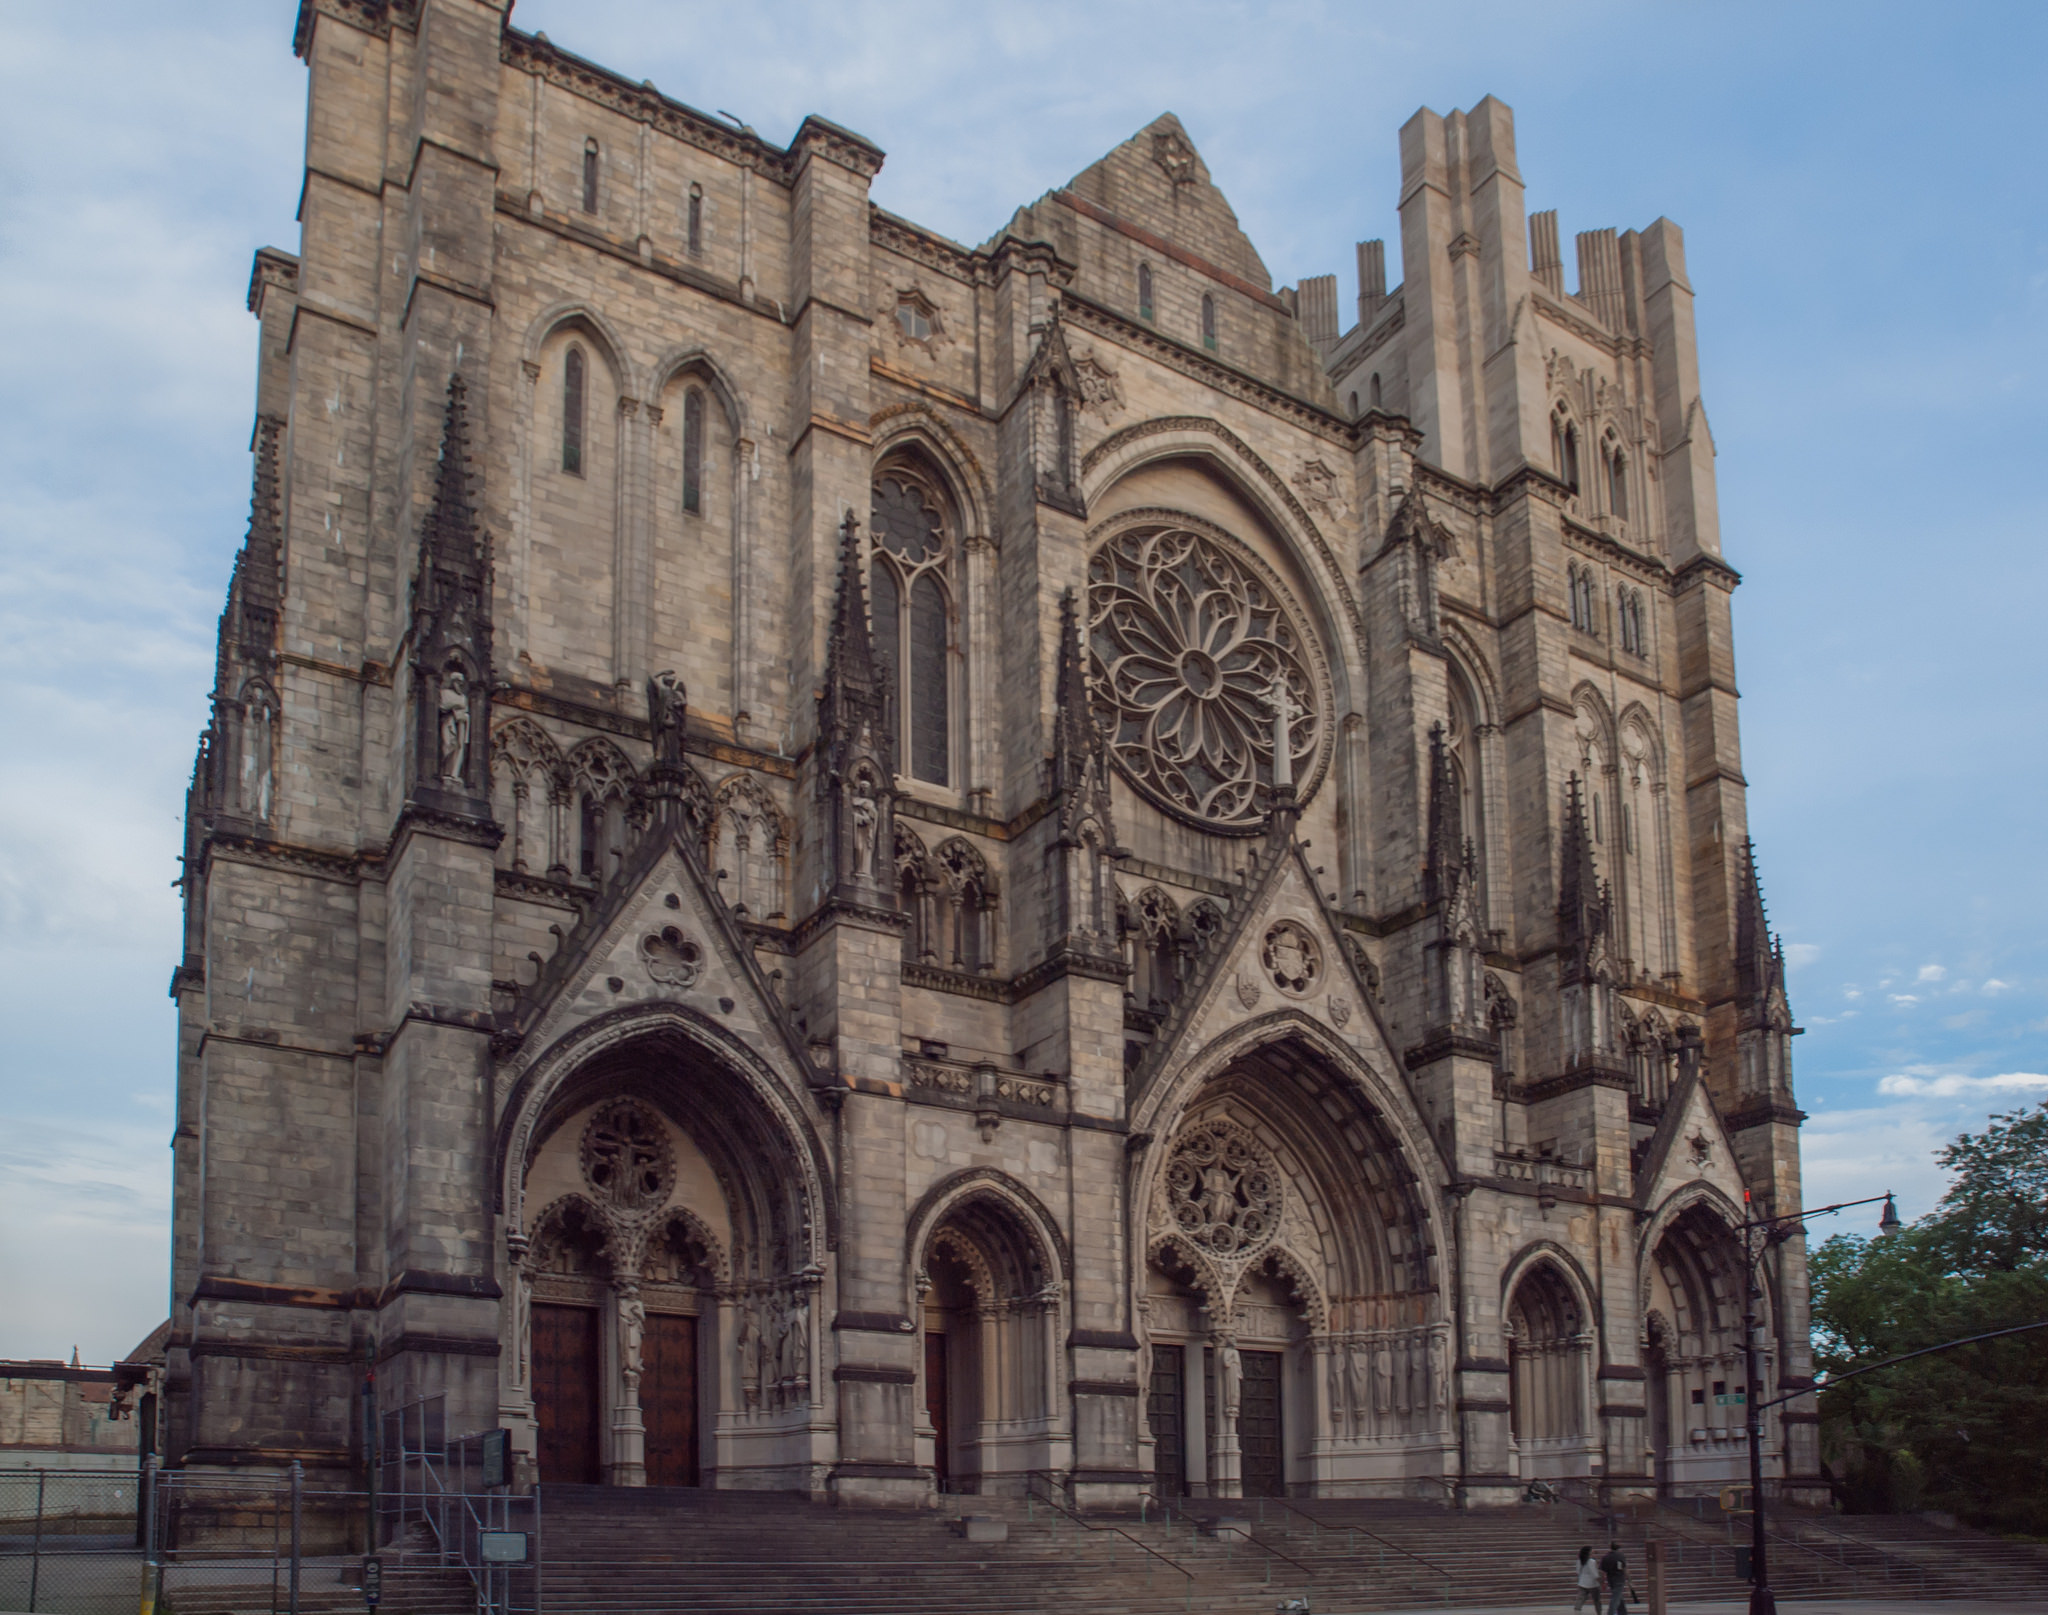 Cathedral Church of St. John the Divine, 2012. Credit: Frano Folini/Flickr